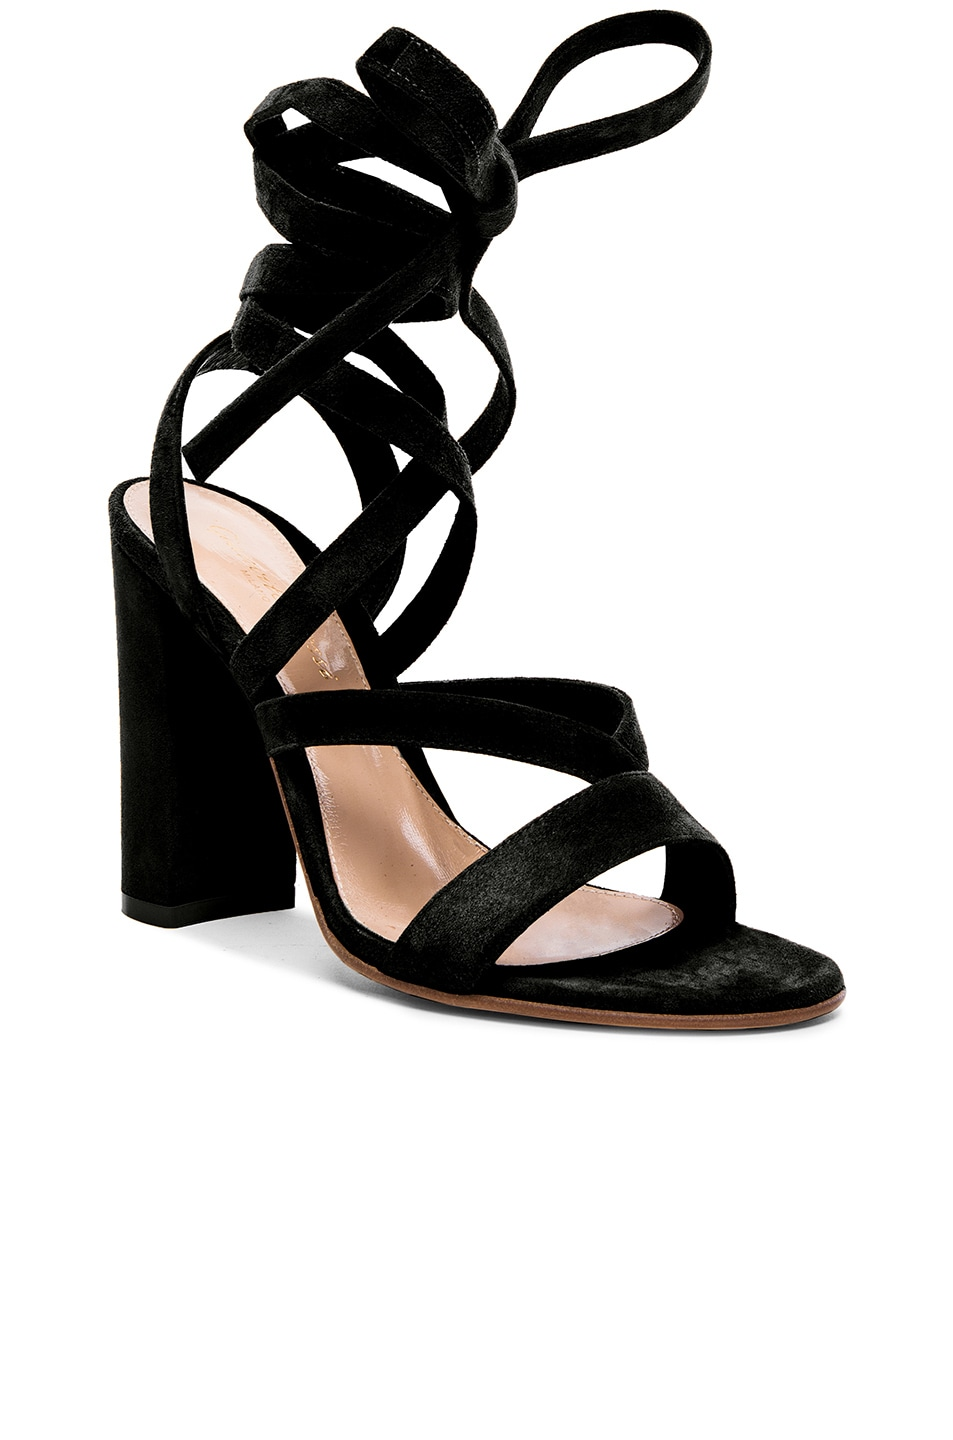 Image 2 of Gianvito Rossi Suede Sandals in Black